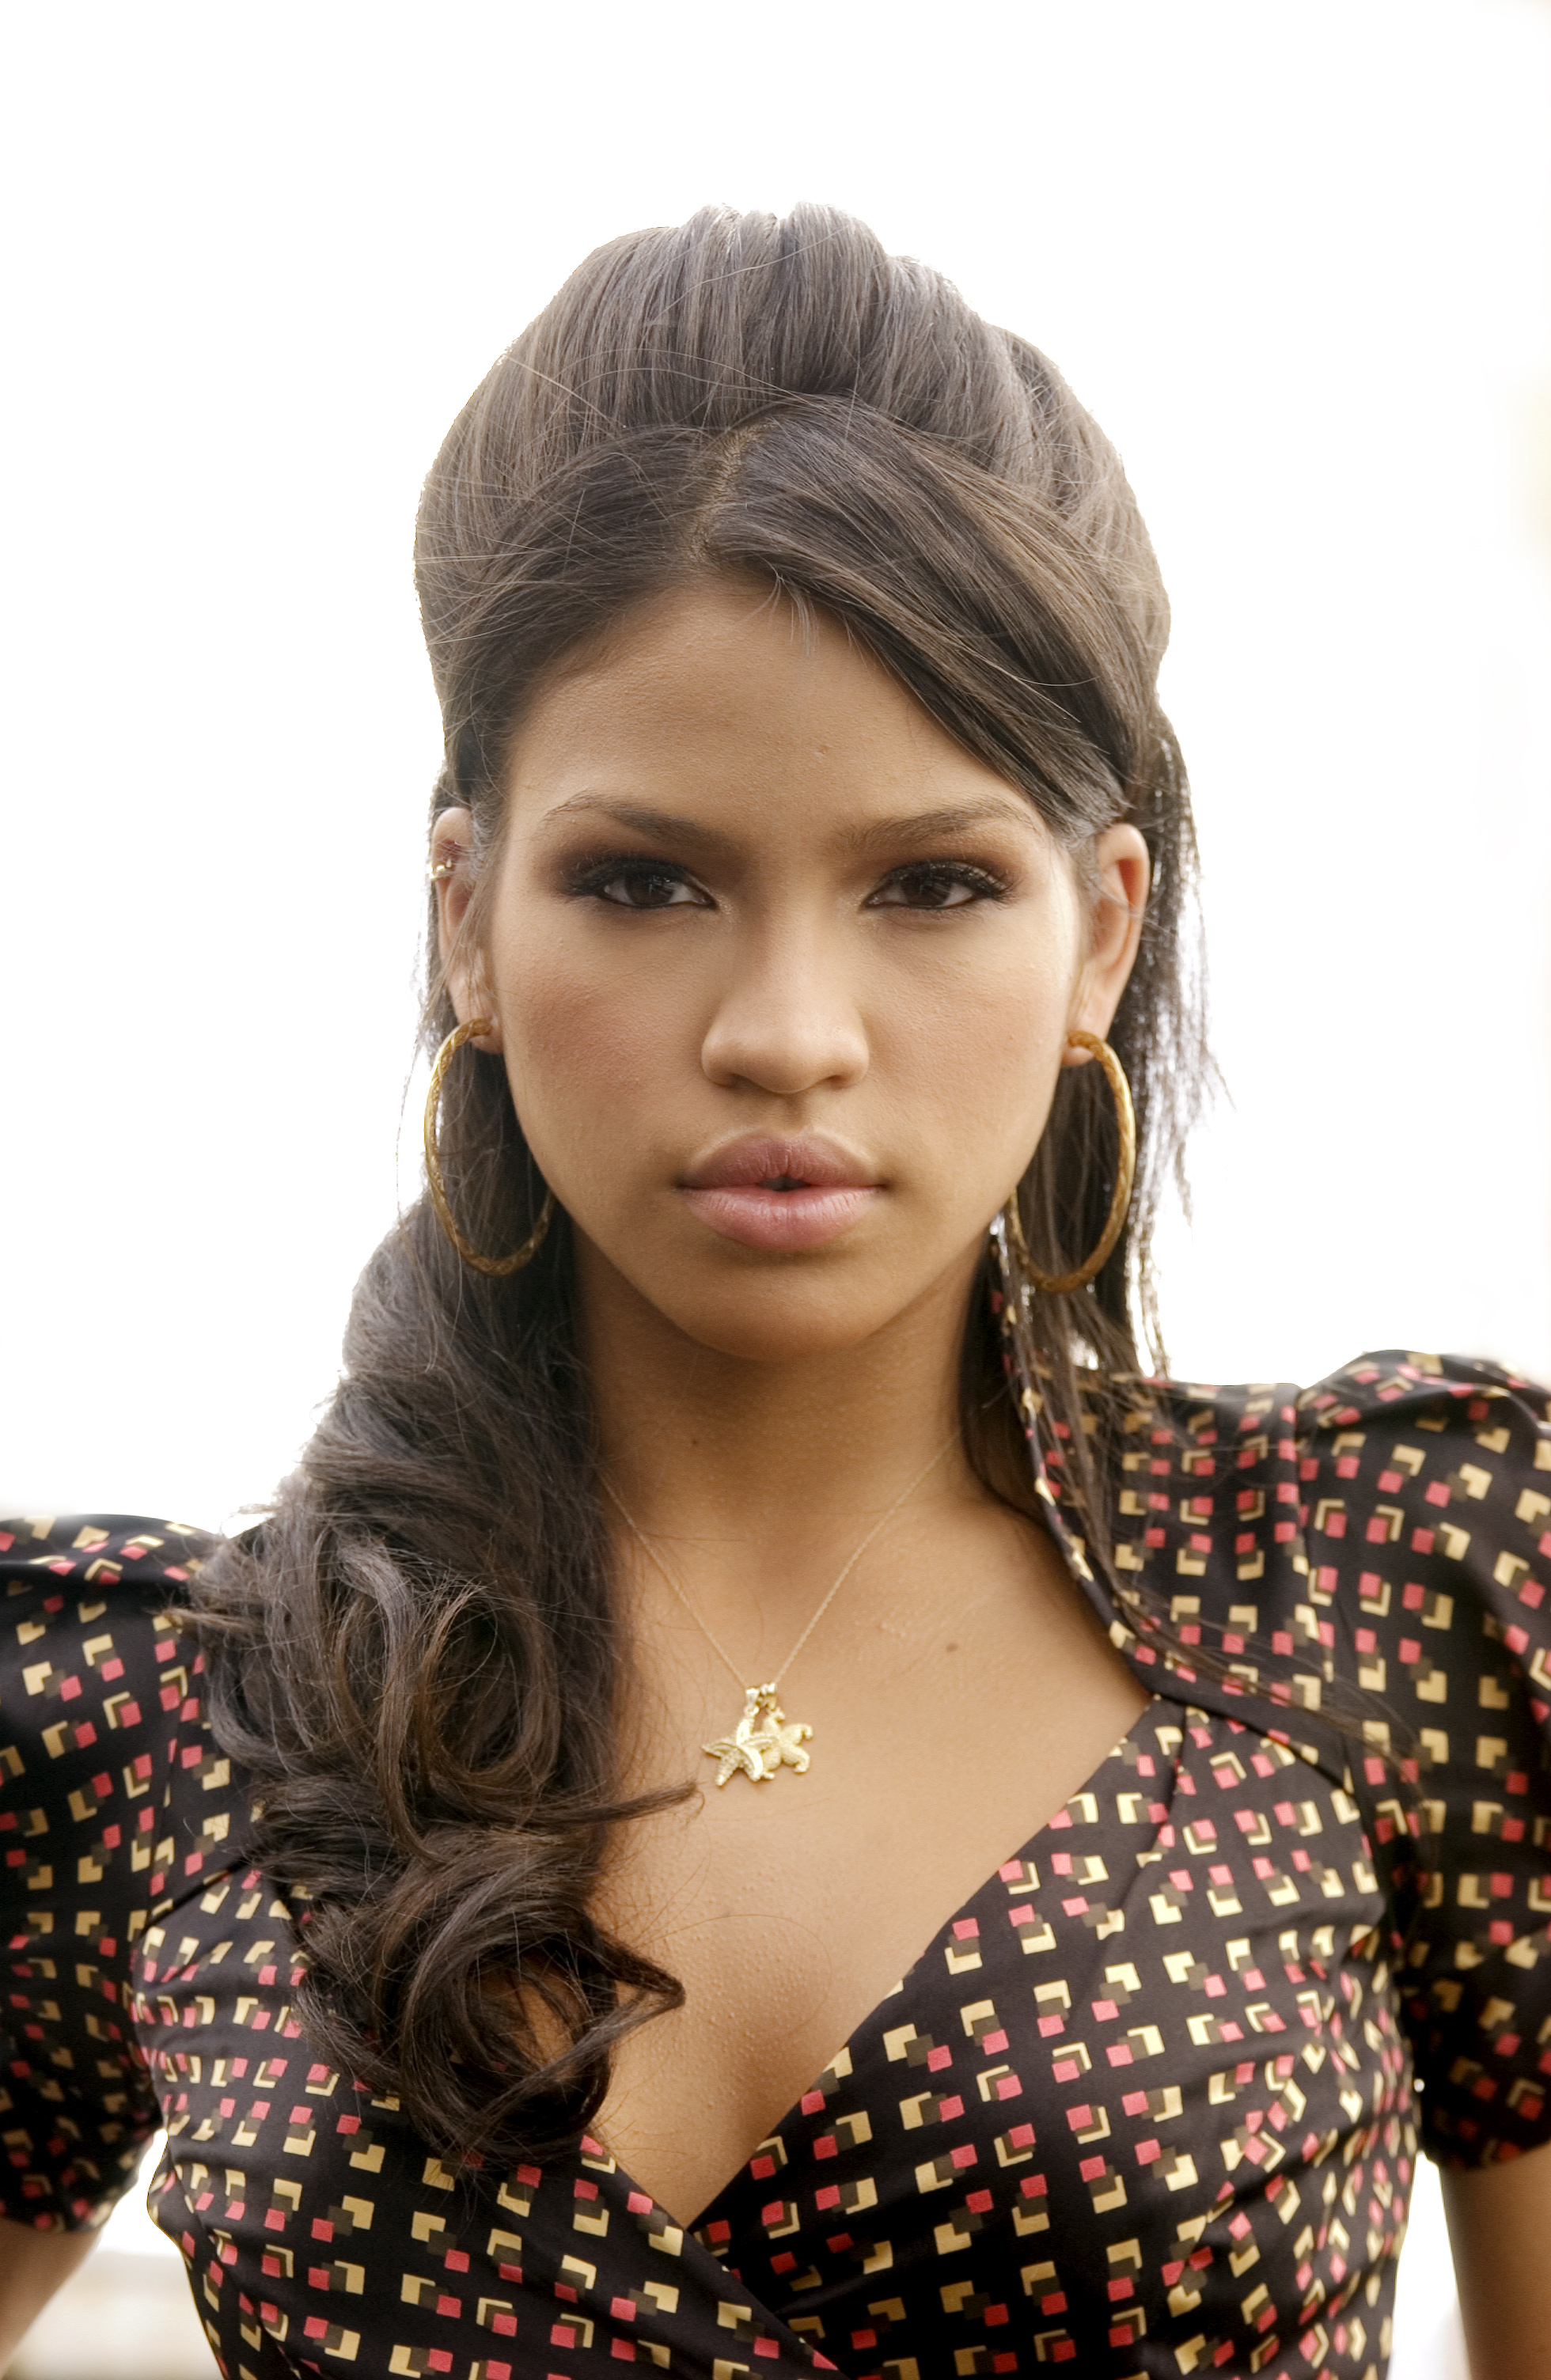 cassie ventura albumscassie ventura 2017, cassie ventura 2016, cassie ventura insta, cassie ventura twitter, cassie ventura site, cassie ventura albums, cassie ventura live, cassie ventura instagram, cassie ventura and diddy, cassie ventura step up 2, cassie ventura father, cassie ventura news, cassie ventura gif tumblr, cassie ventura, cassie ventura tumblr, cassie ventura 2015, cassie ventura parents, cassie ventura and p diddy, cassie ventura wiki, cassie ventura me u